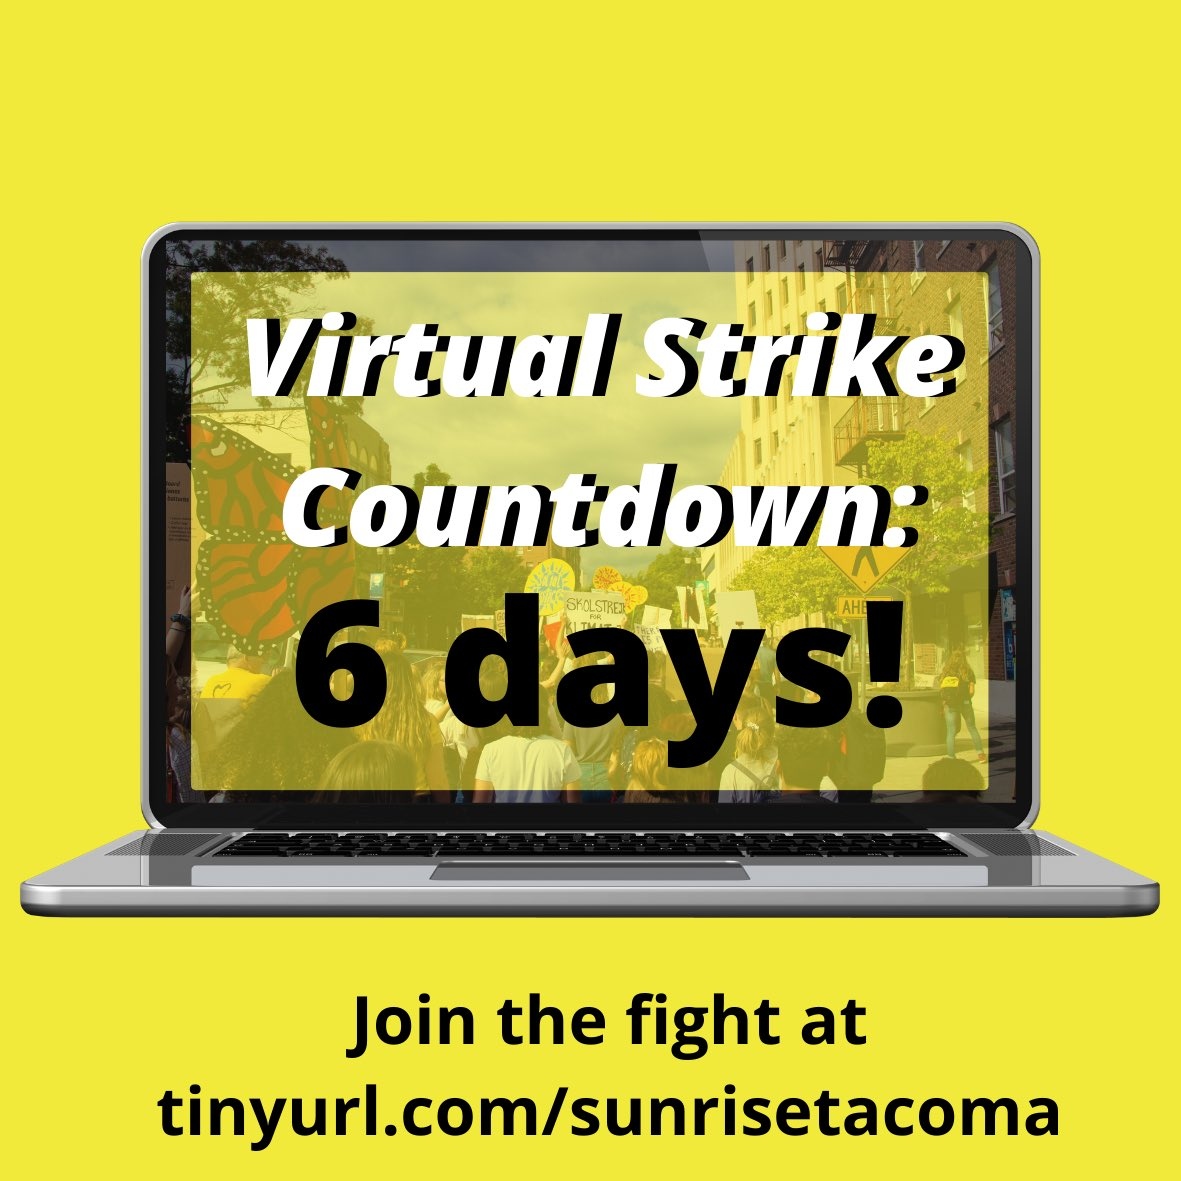 6️⃣❗️days away folks! Register here: tinyurl.com/sunrisetacoma